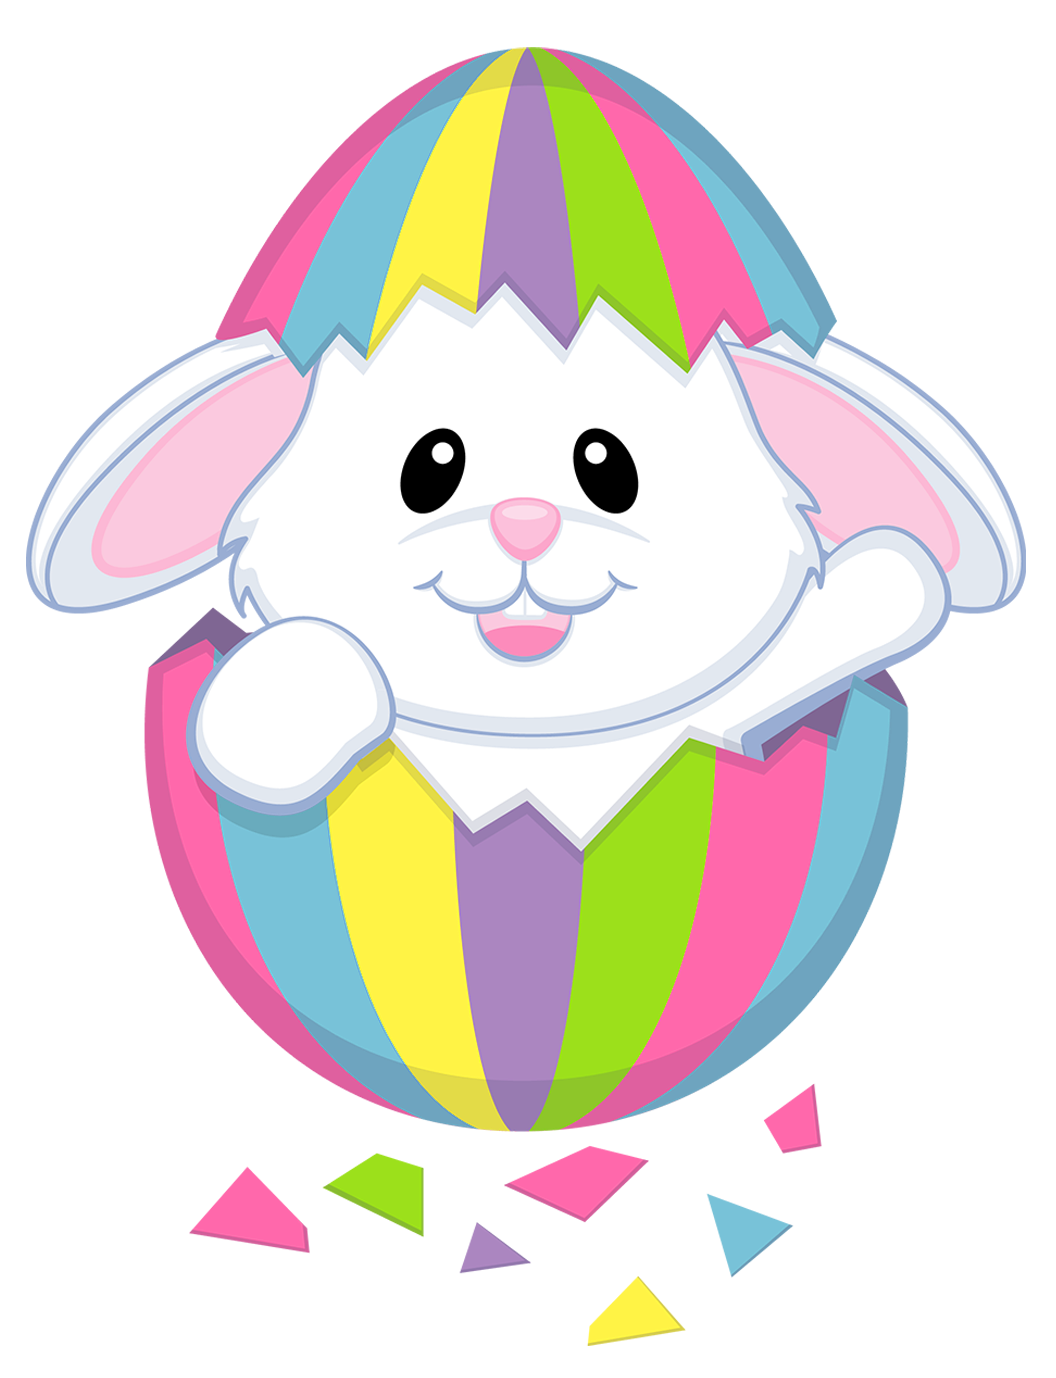 Easter Bunny - ClipArt Best | Easter eggs | Pinterest | Easter bunny ... for Easter Animals Clipart  284dqh